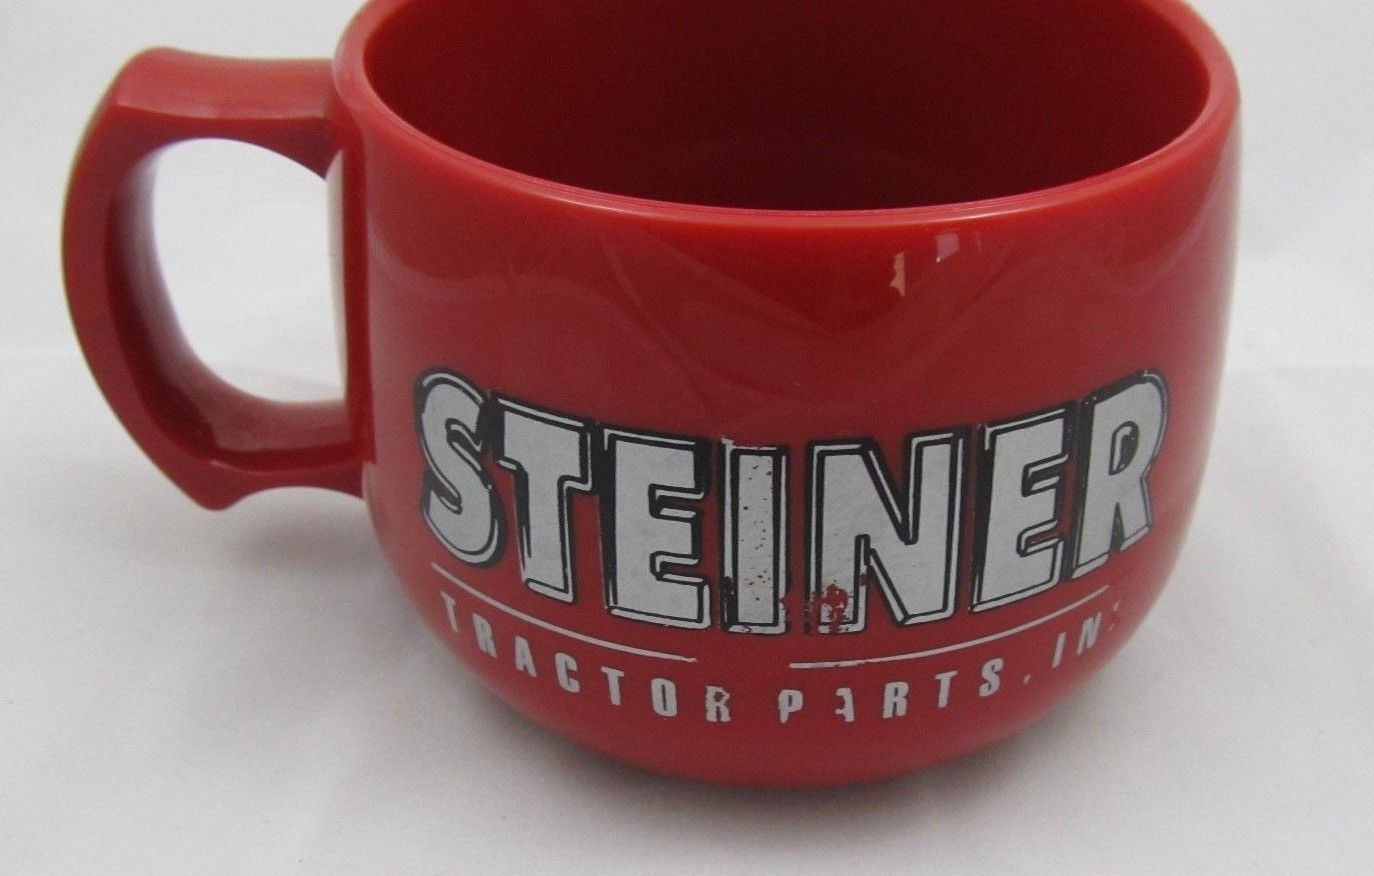 Red Steiner Tractor Parts Natural Corn and 50 similar items